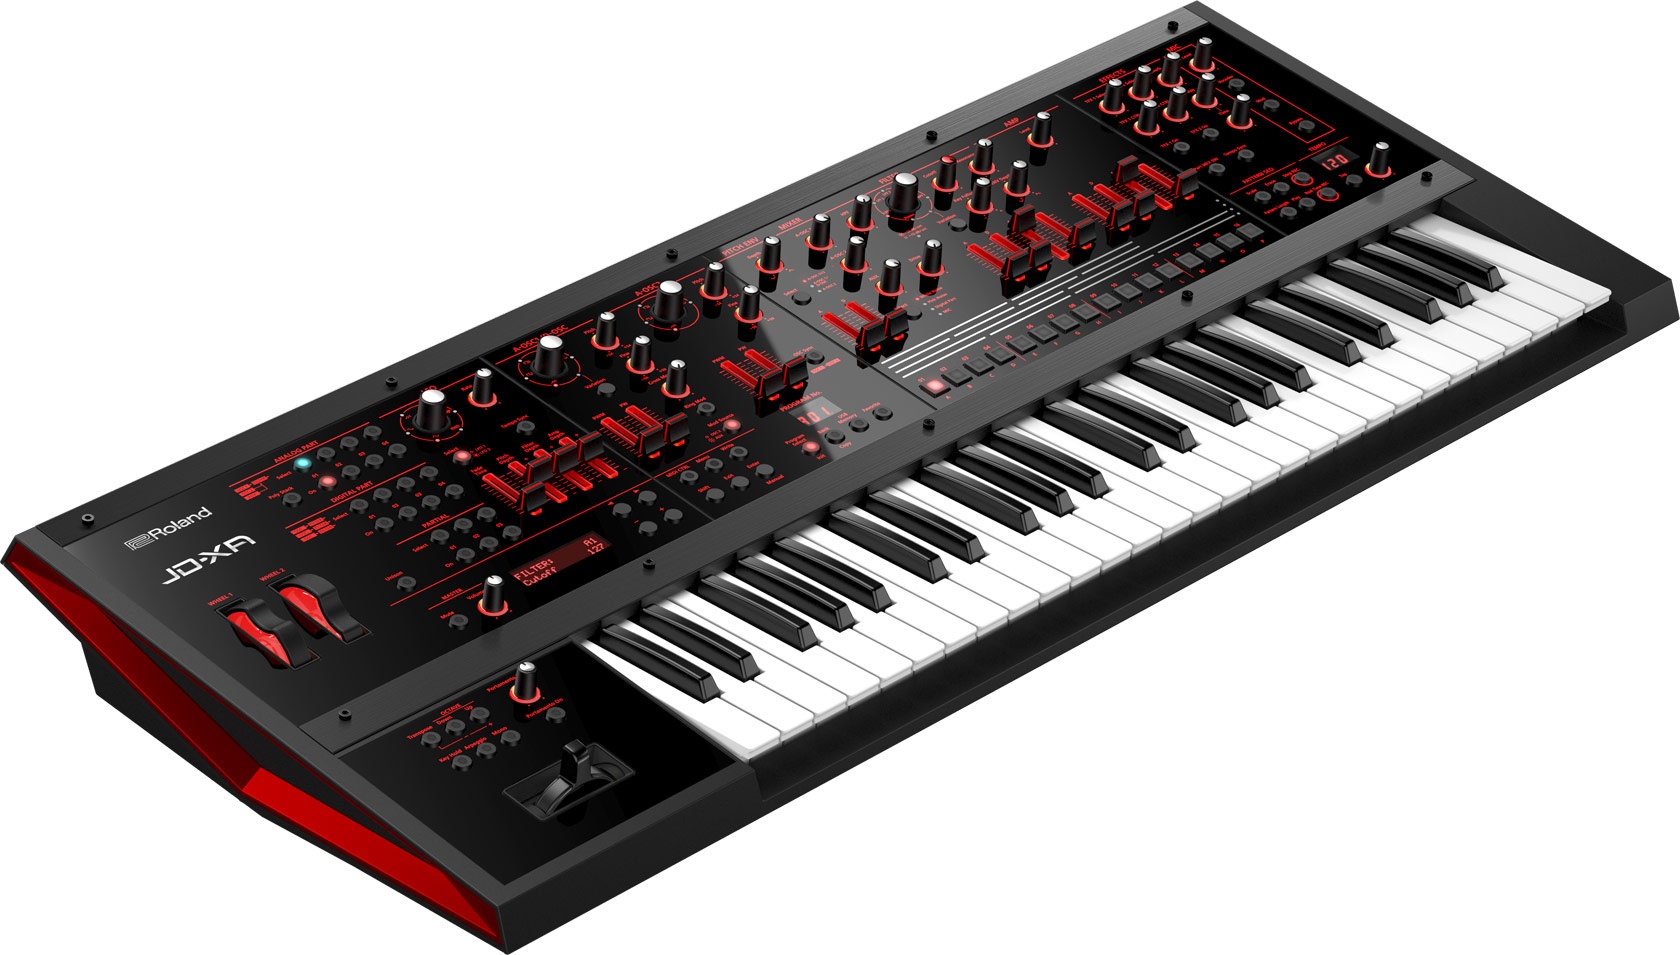 Image Result For Synthesizer Keyboard